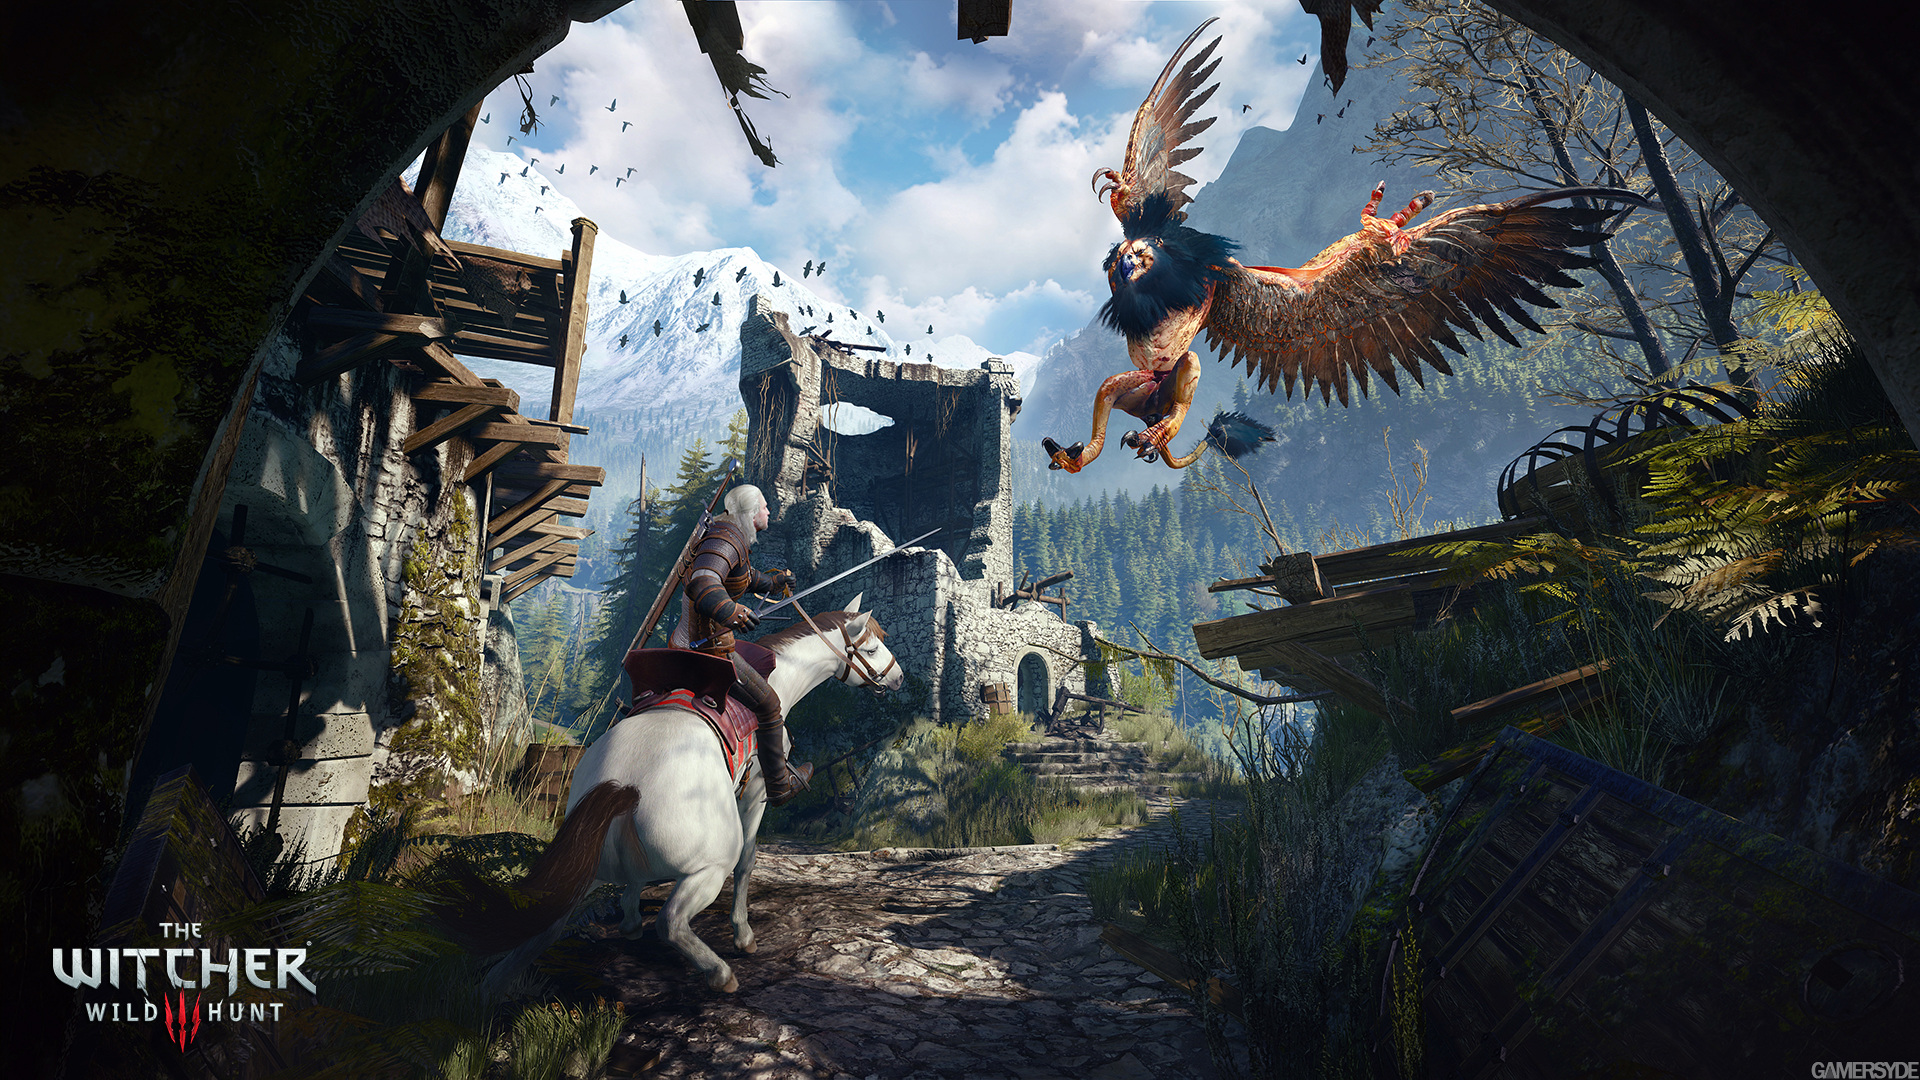 image_the_witcher_3_wild_hunt-27433-2651_0006